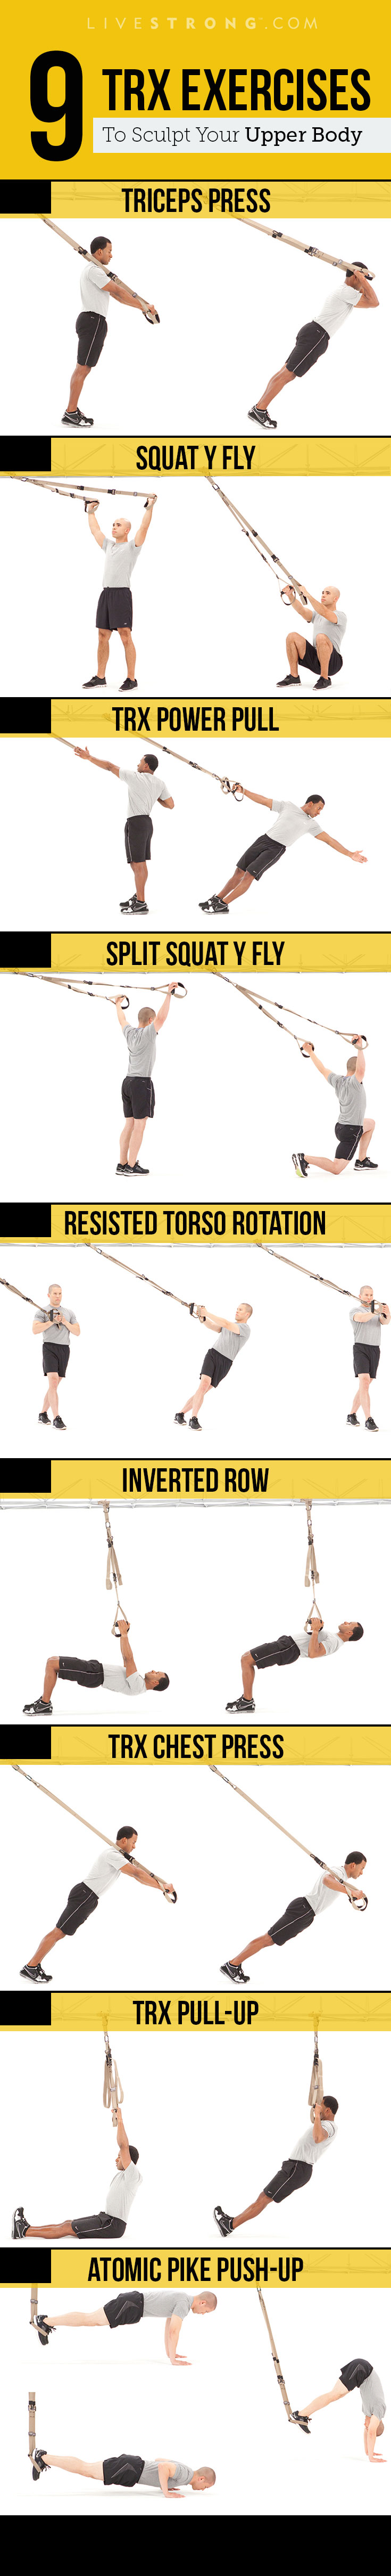 graphic about Printable Trx Workouts titled 9 TRX Moves toward Sculpt an Insanely Durable Higher System